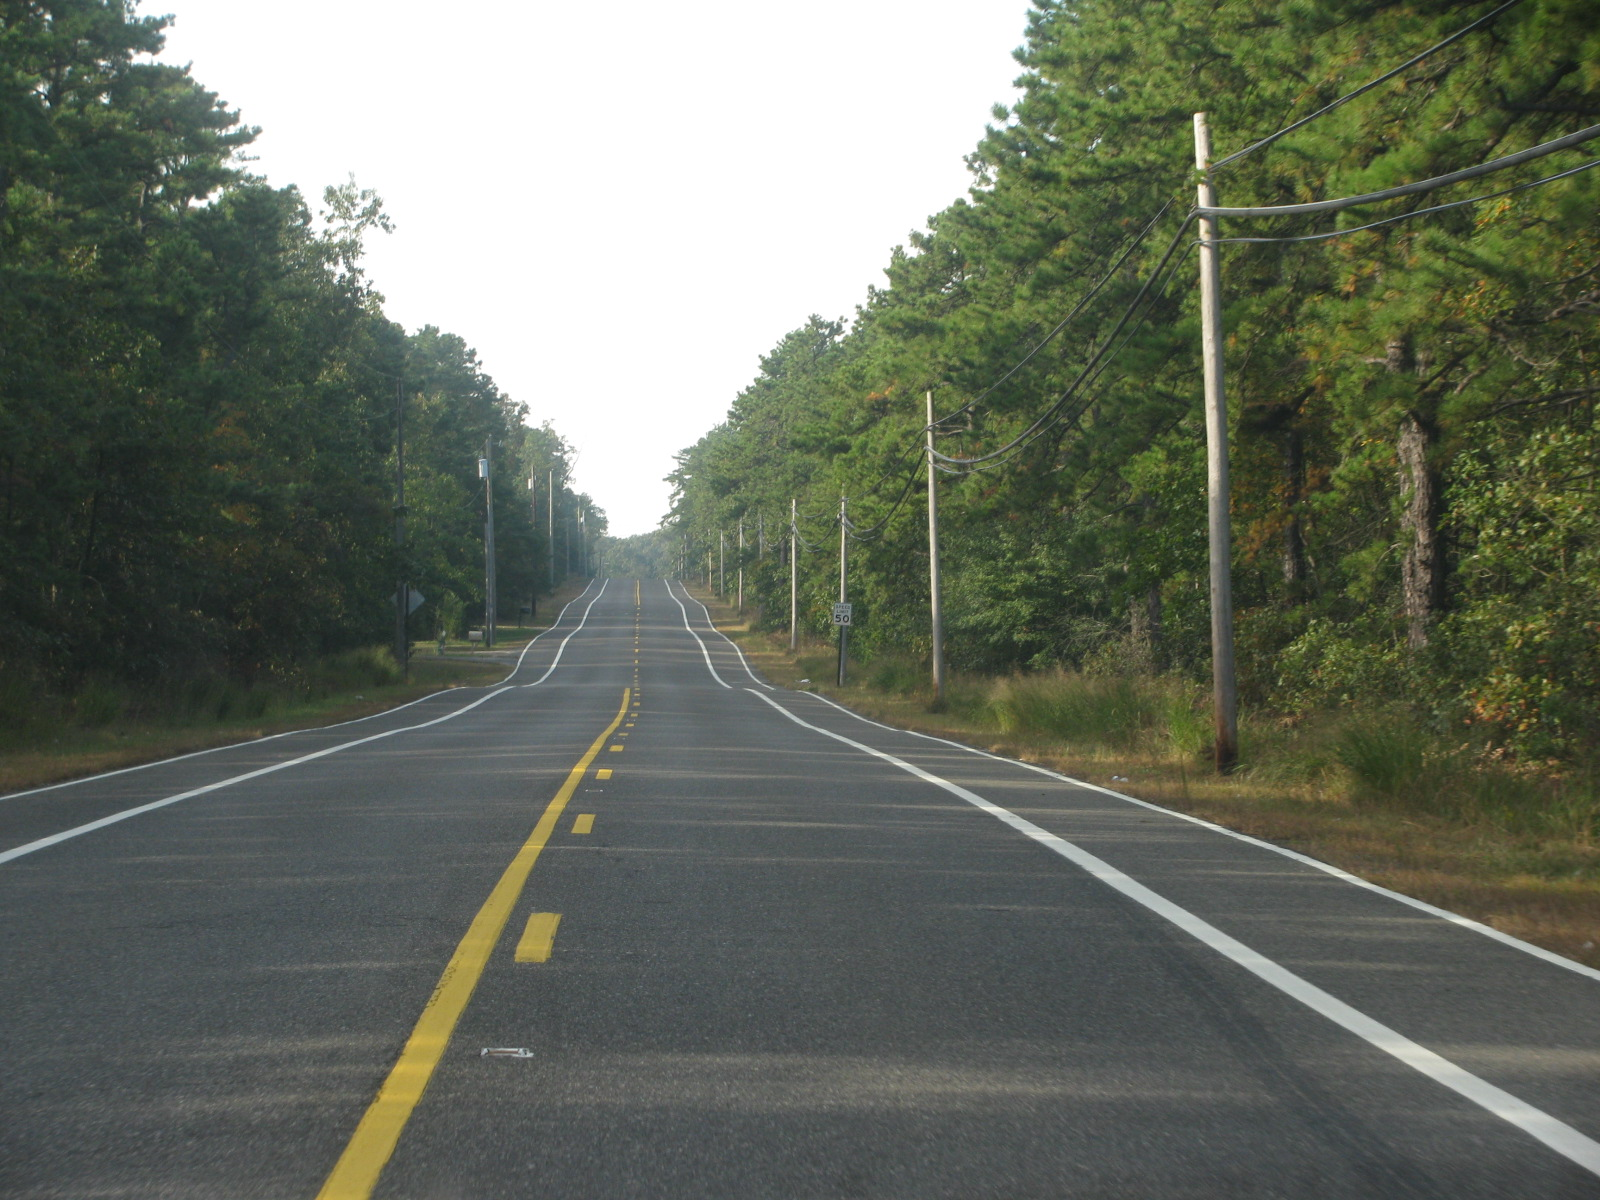 Light In The West: Cheesequake, New Jersey to Assateague, Delaware